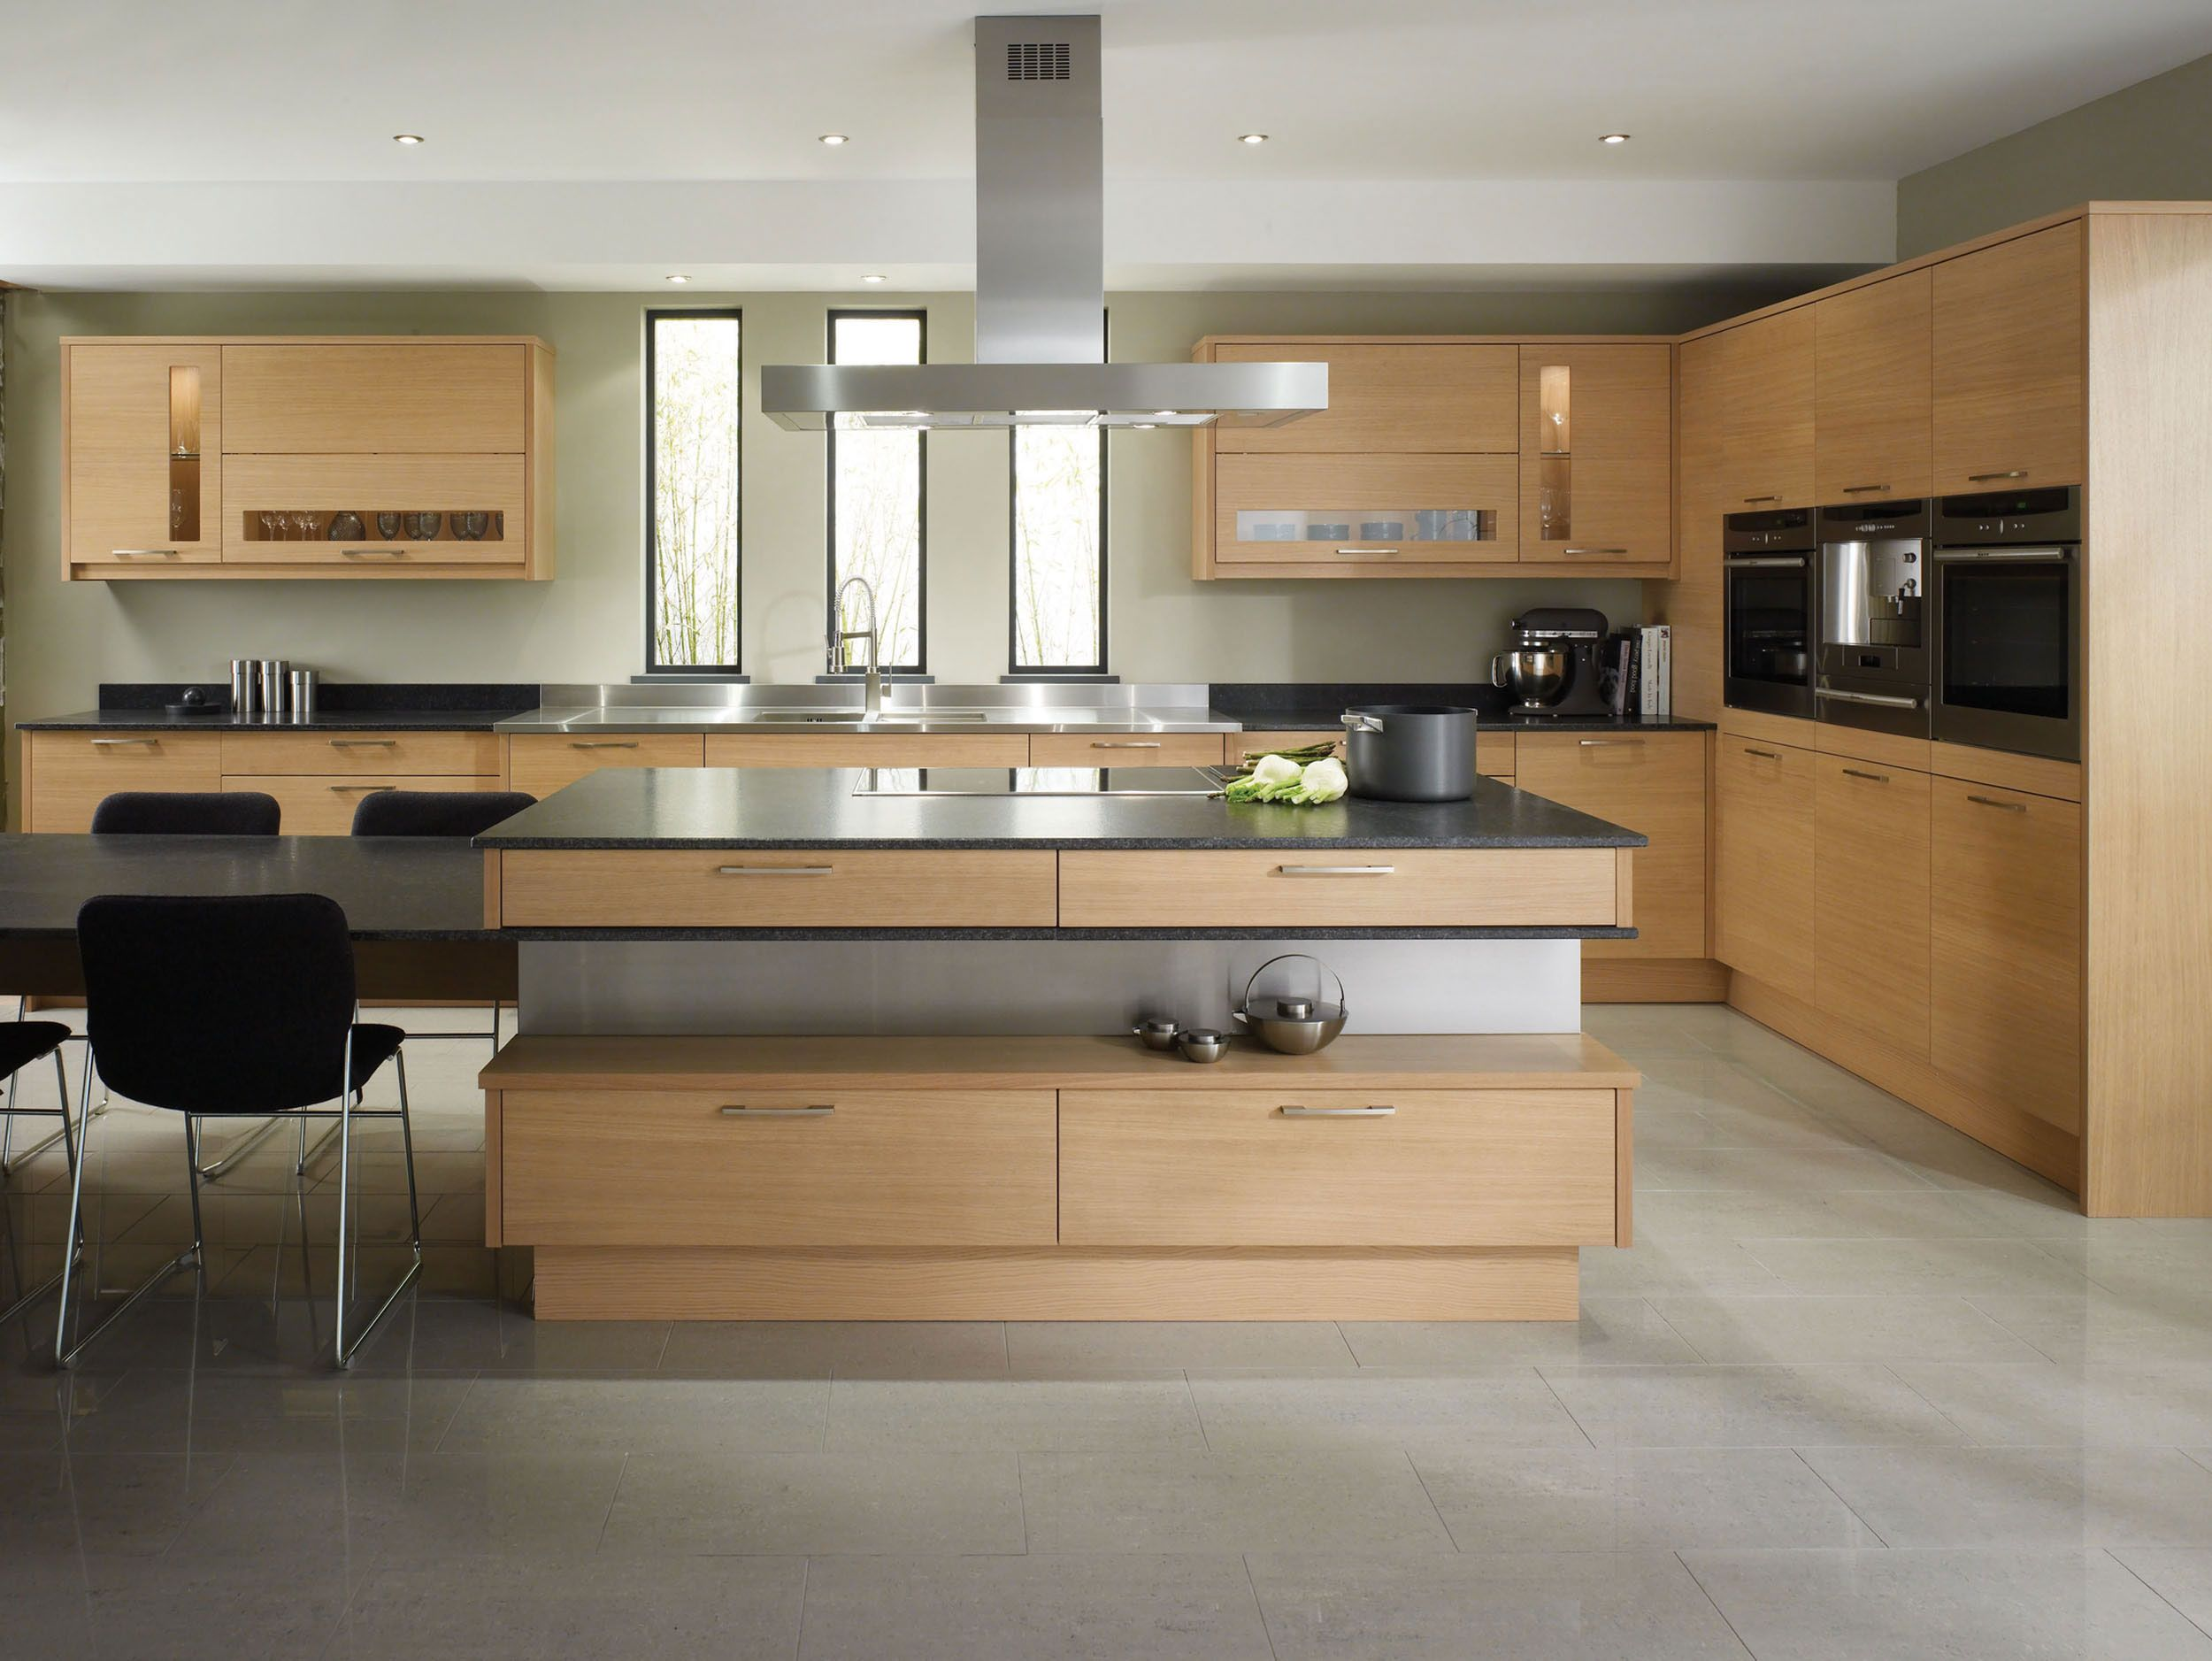 25 Contemporary Kitchen Design Inspiration